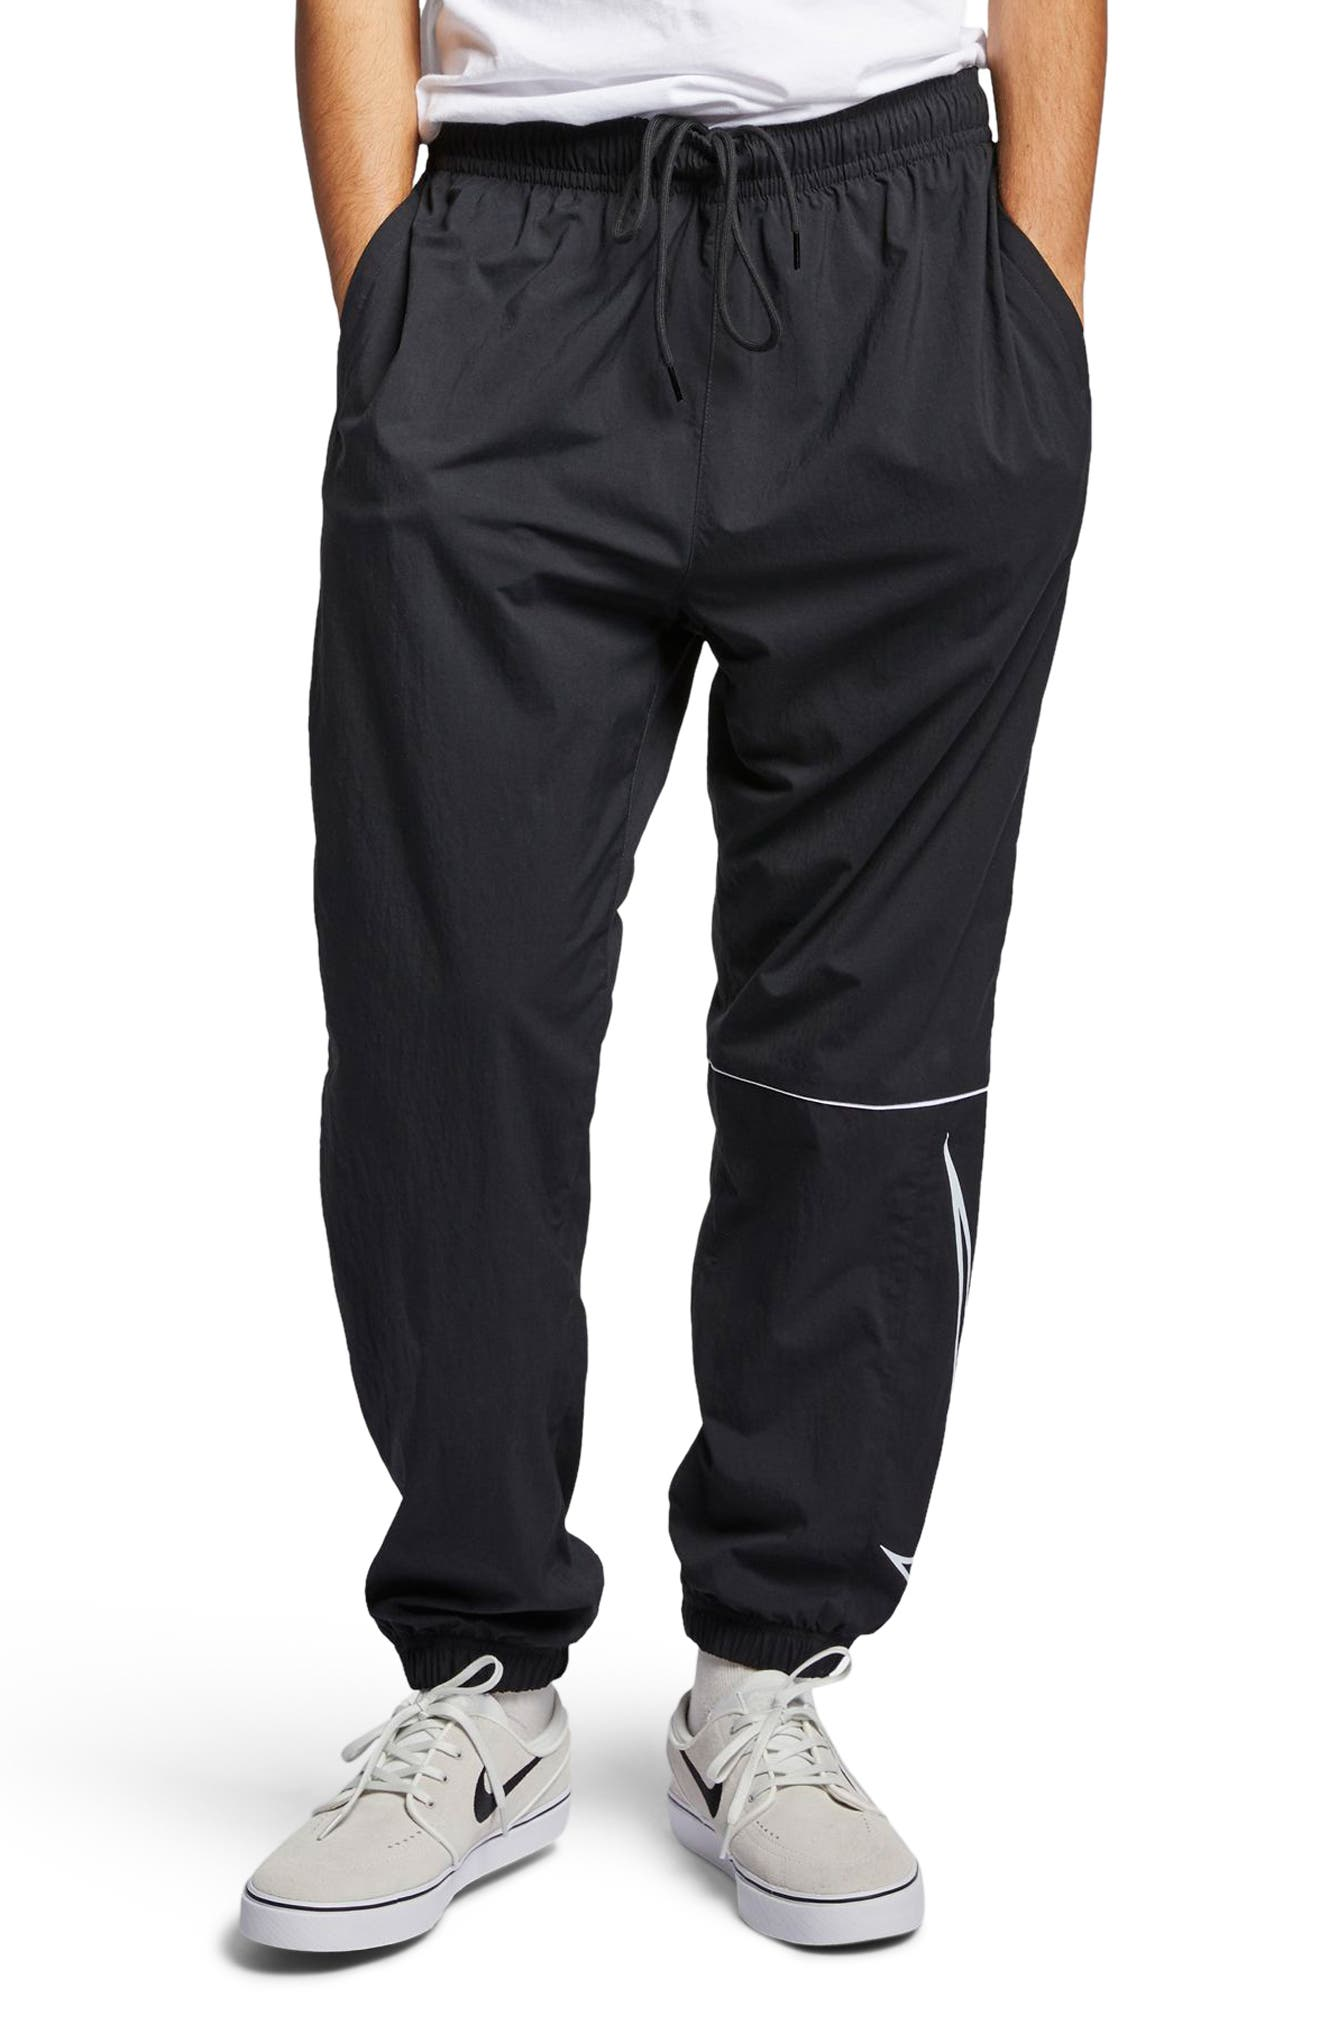 Mens Nike Tracksuit Bottoms Xxl Highly Polished Men's Clothing